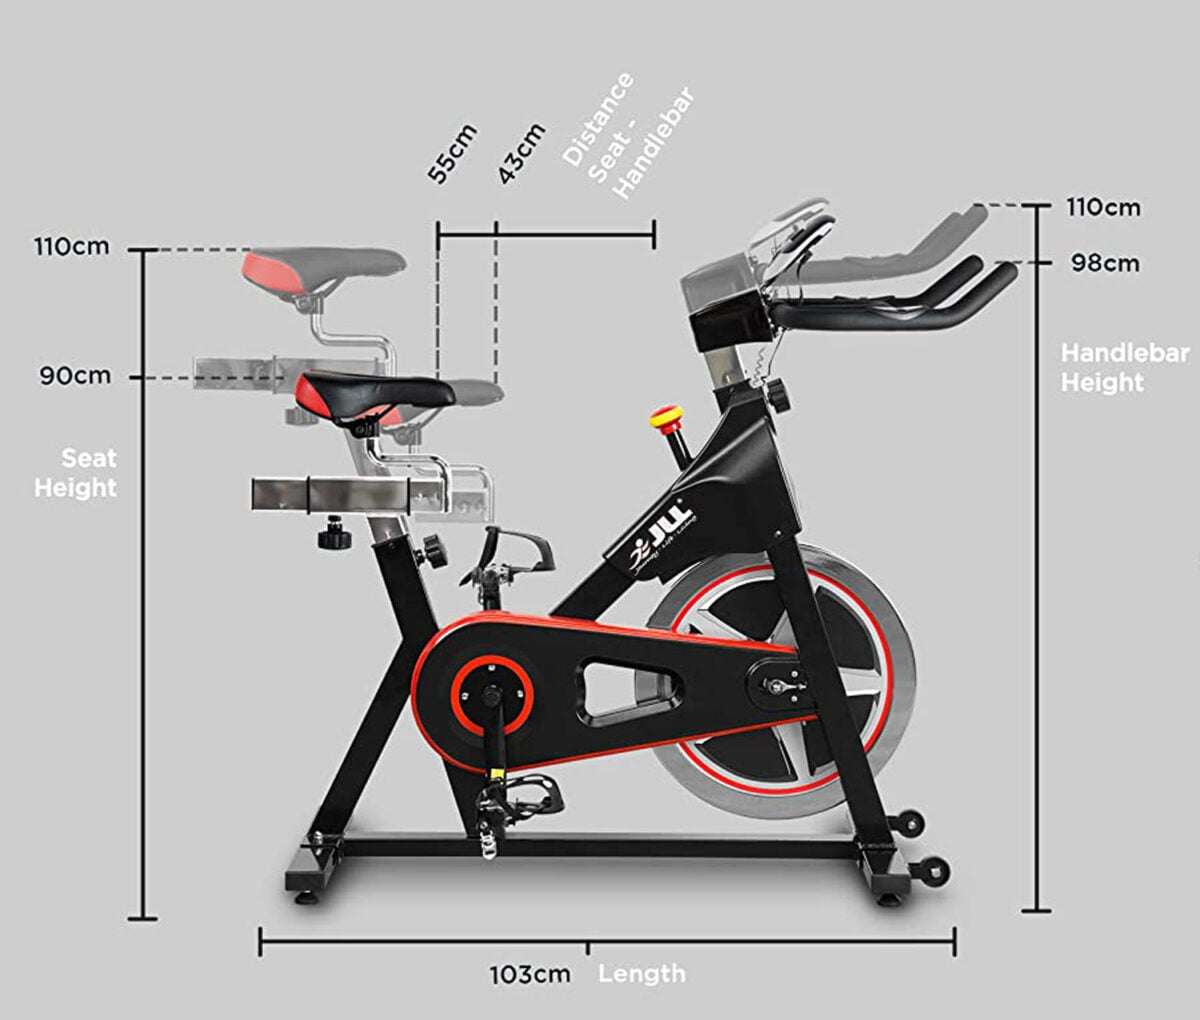 JLL IC300 Indoor Exercise Bike dimensions